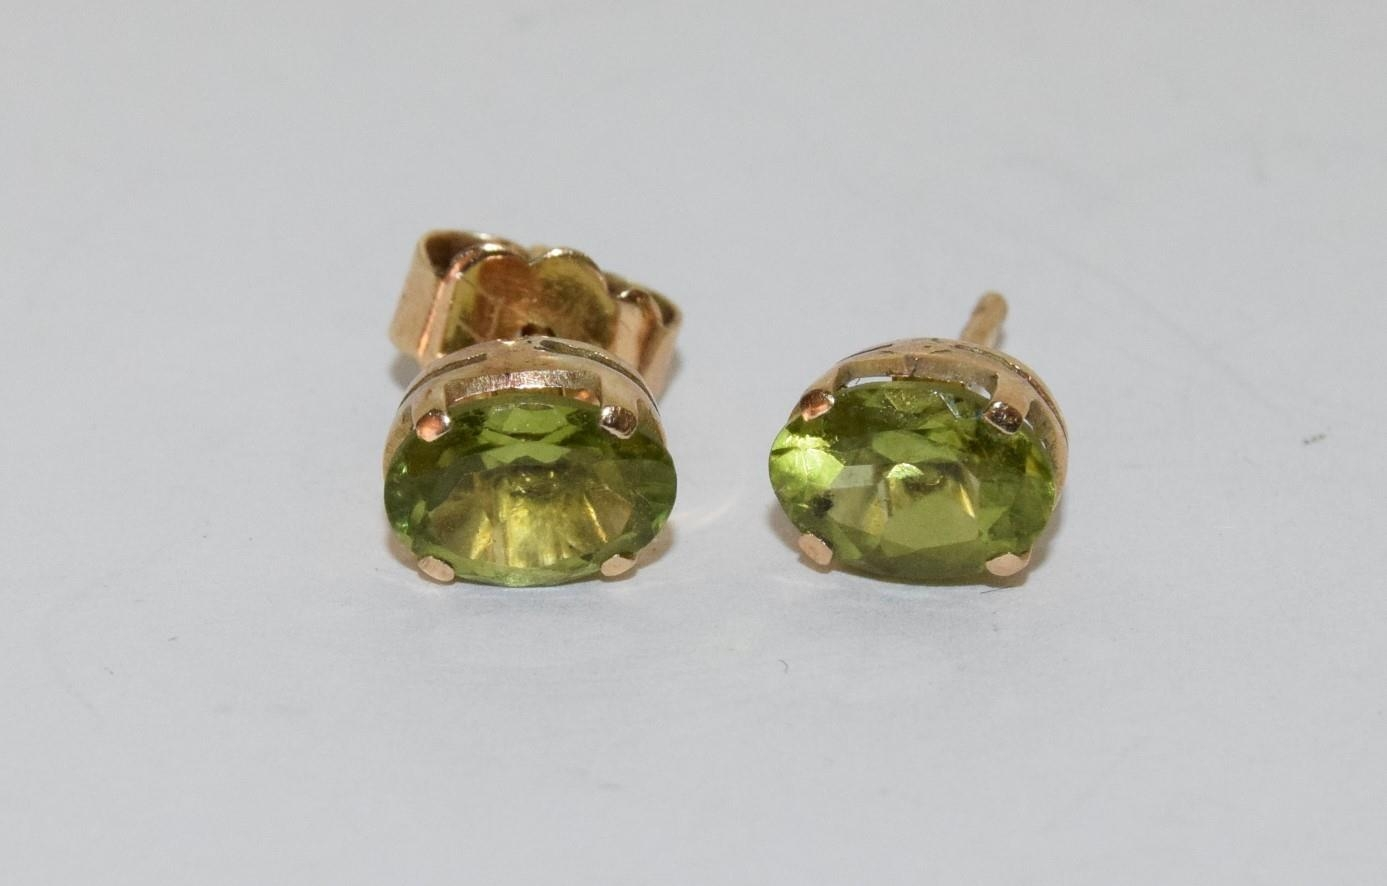 9ct gold ladies cameo ring together with a pair of gold peridot earrings - Image 4 of 5